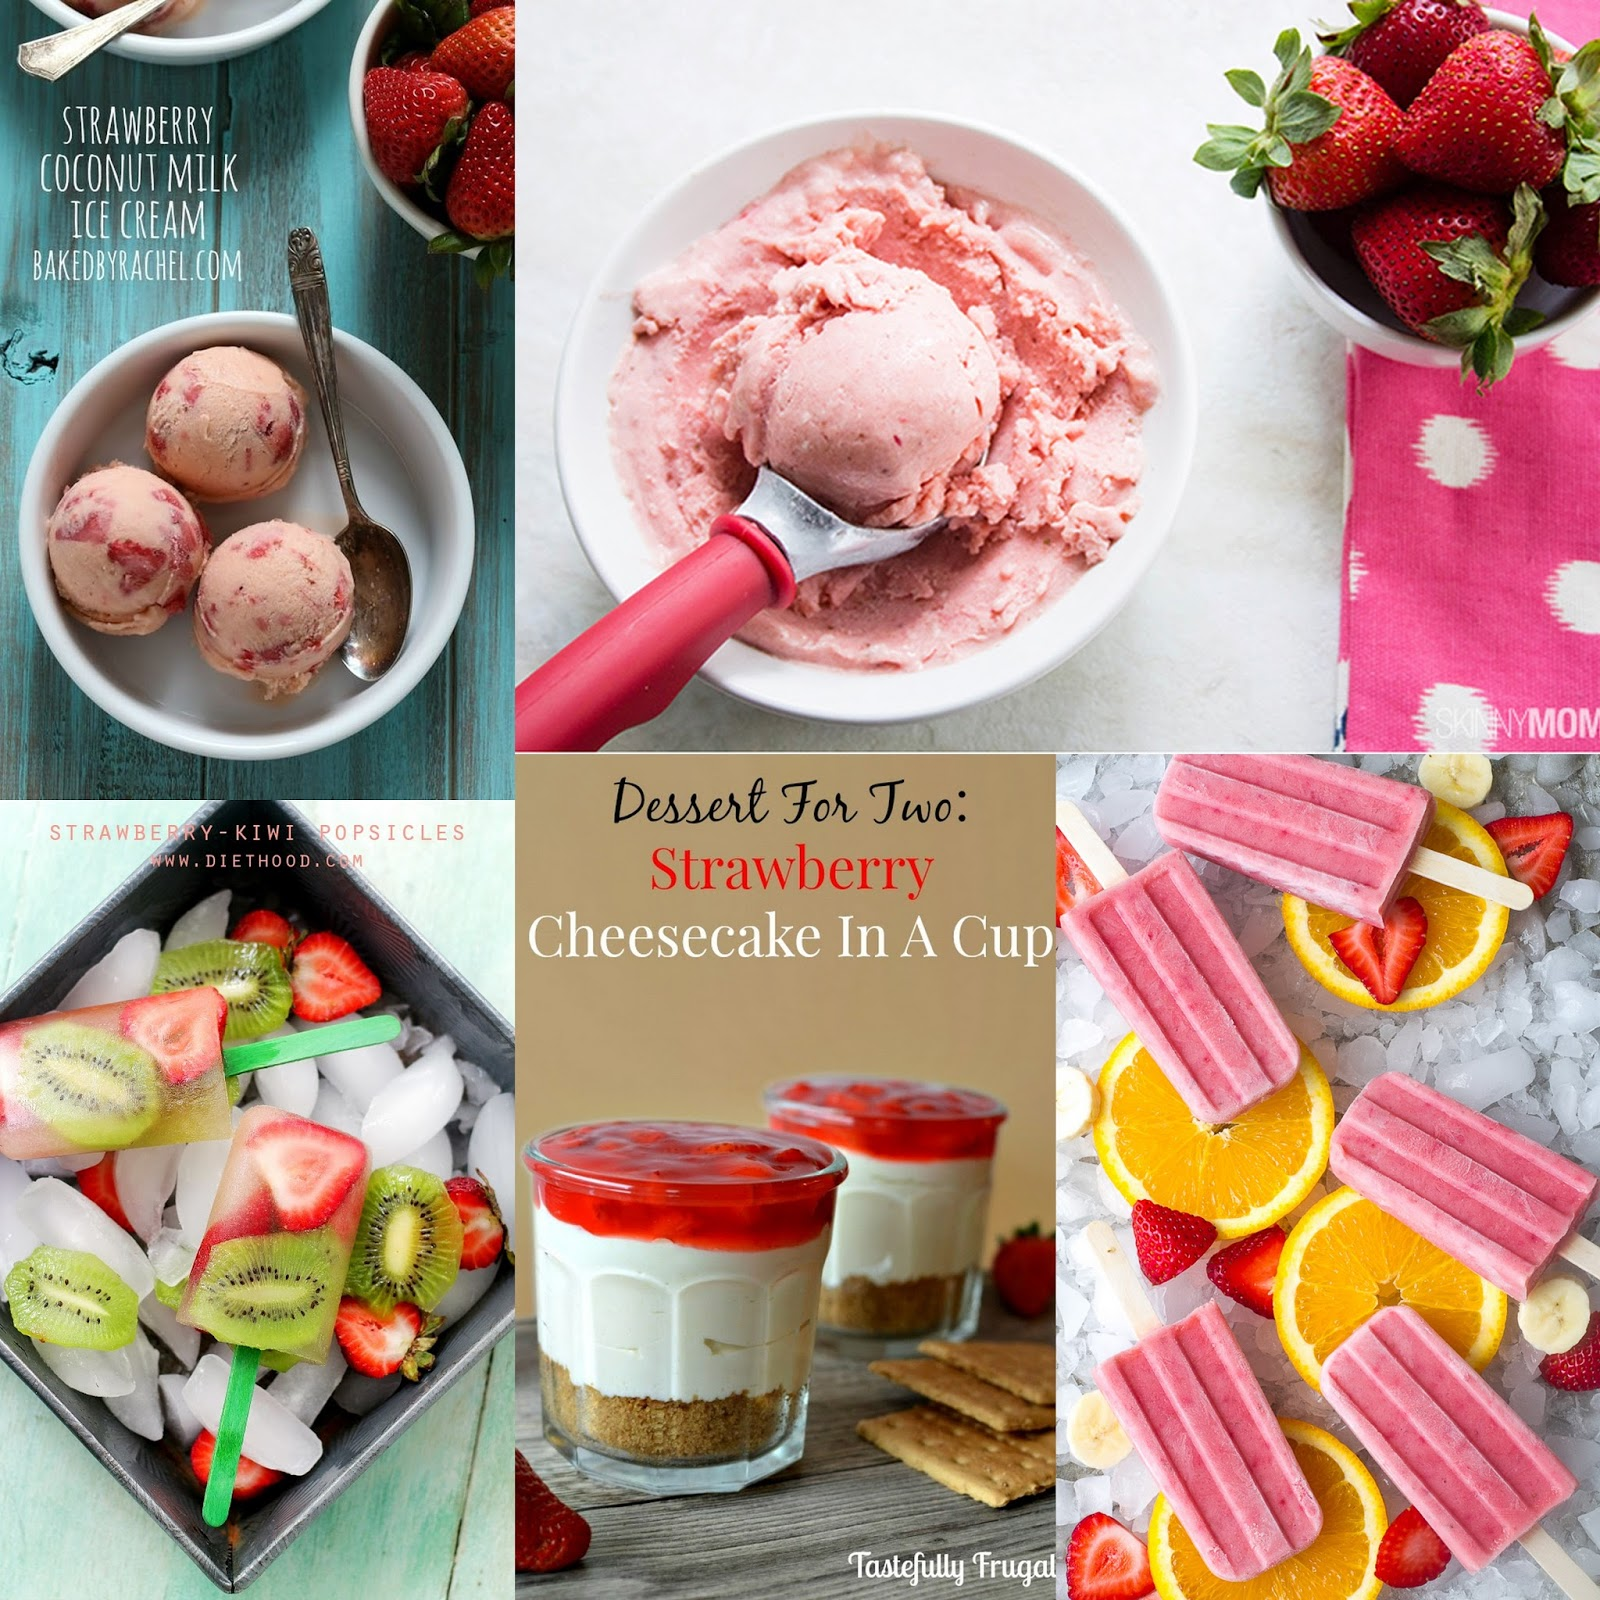 10 Strawberry Recipes for Summer